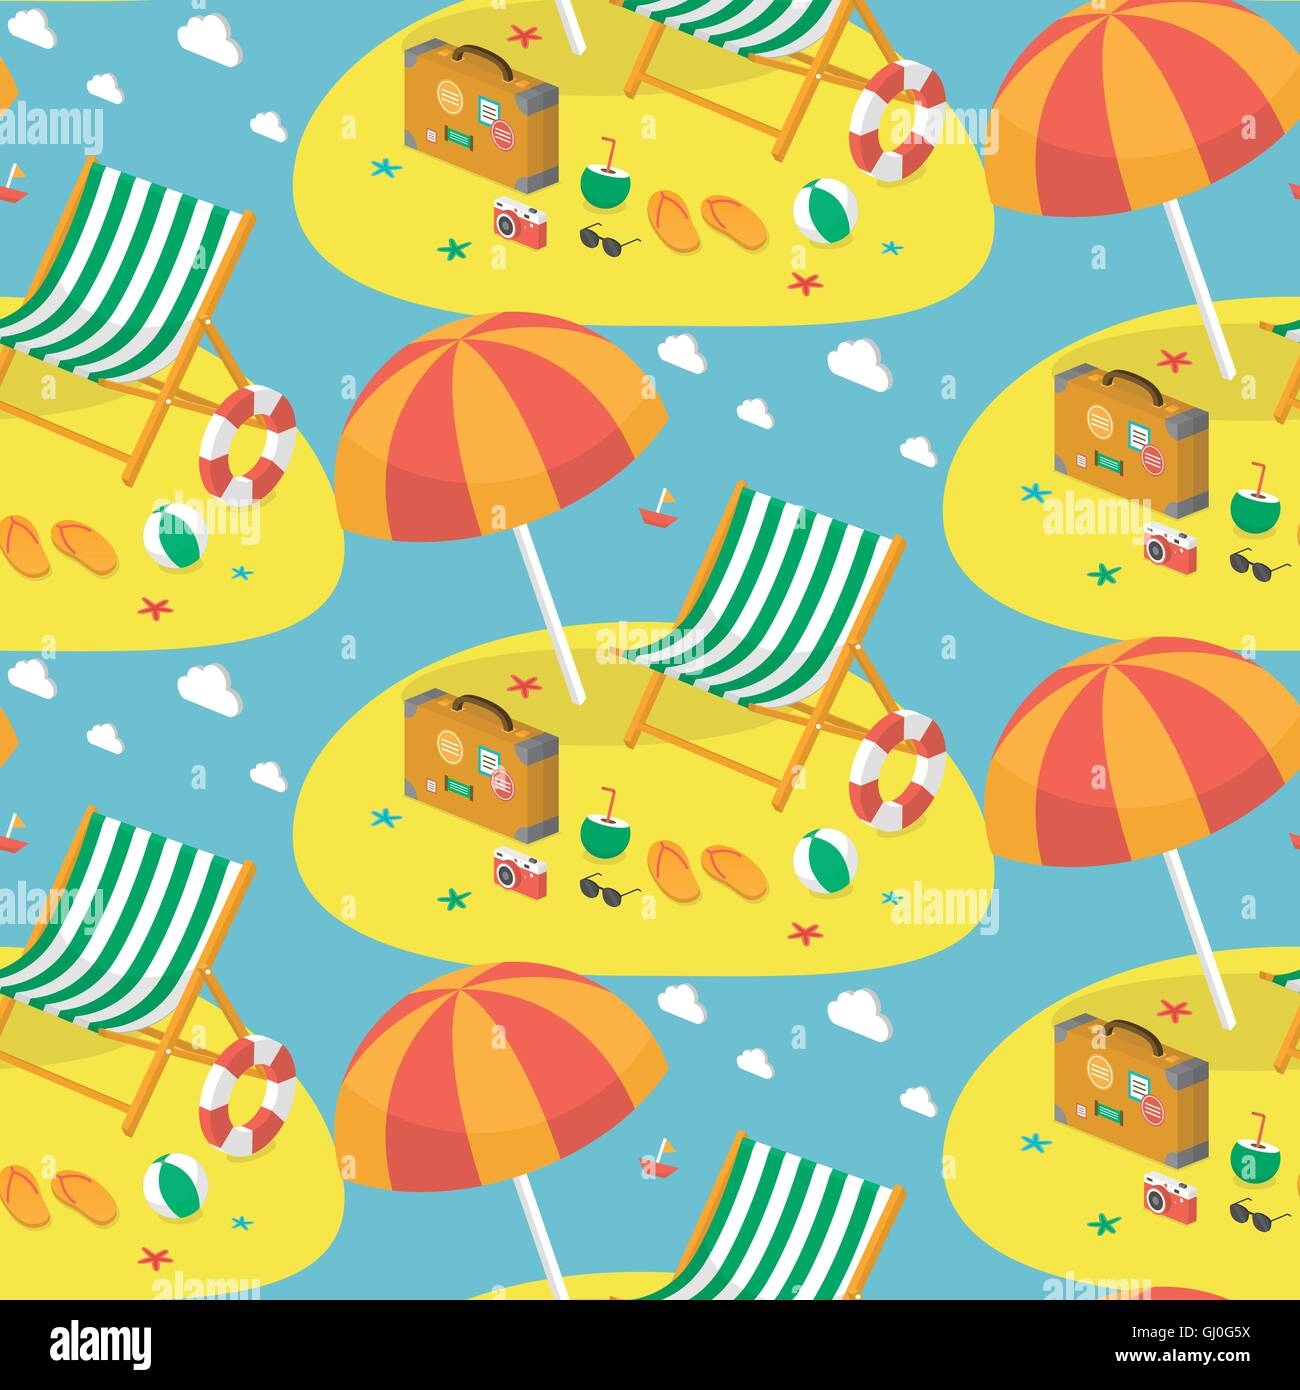 Summer attractive vacationland beach seamless pattern design - Stock Image